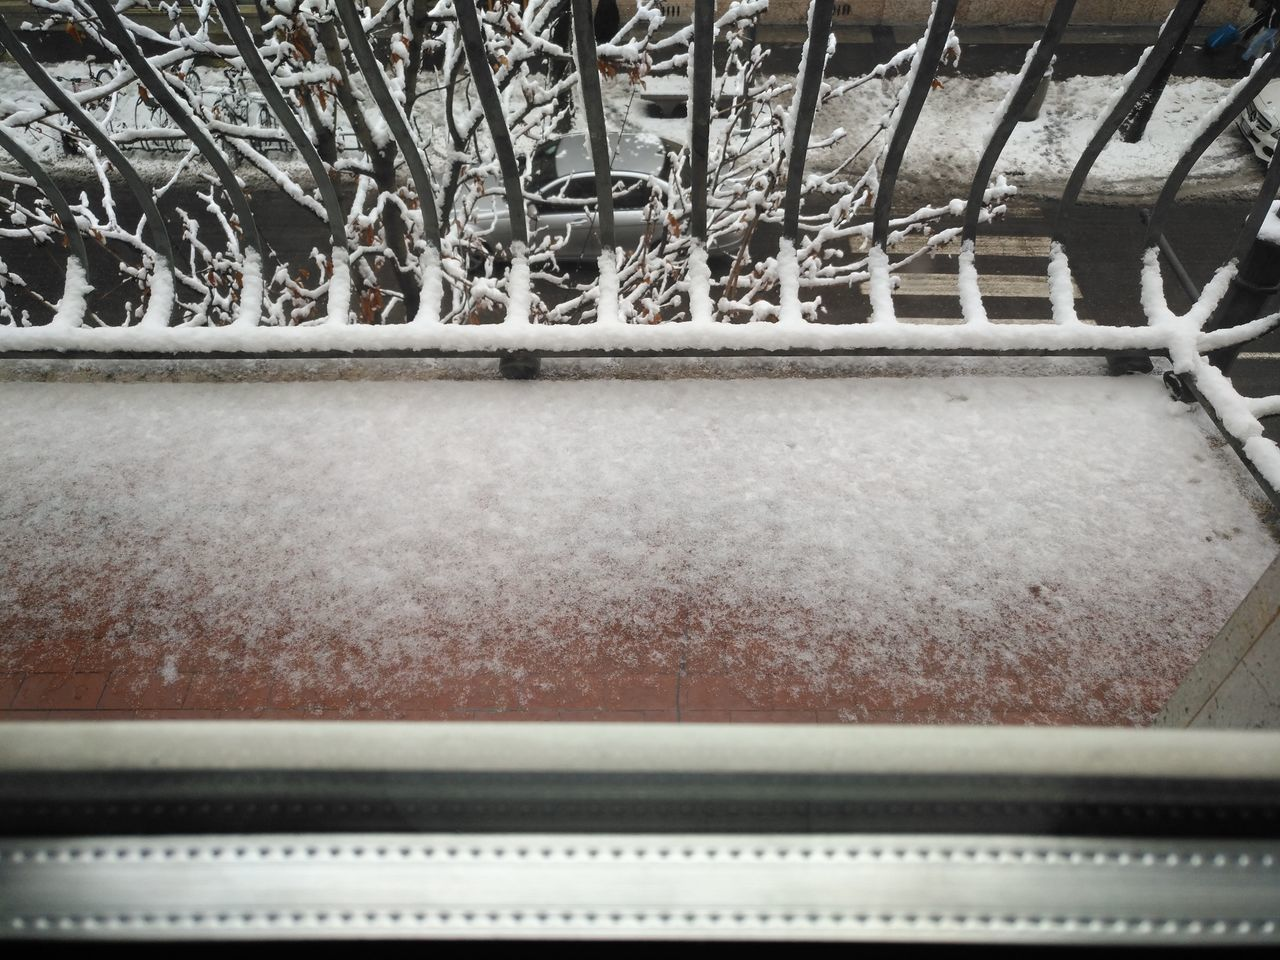 metal, no people, close-up, day, indoors, cold temperature